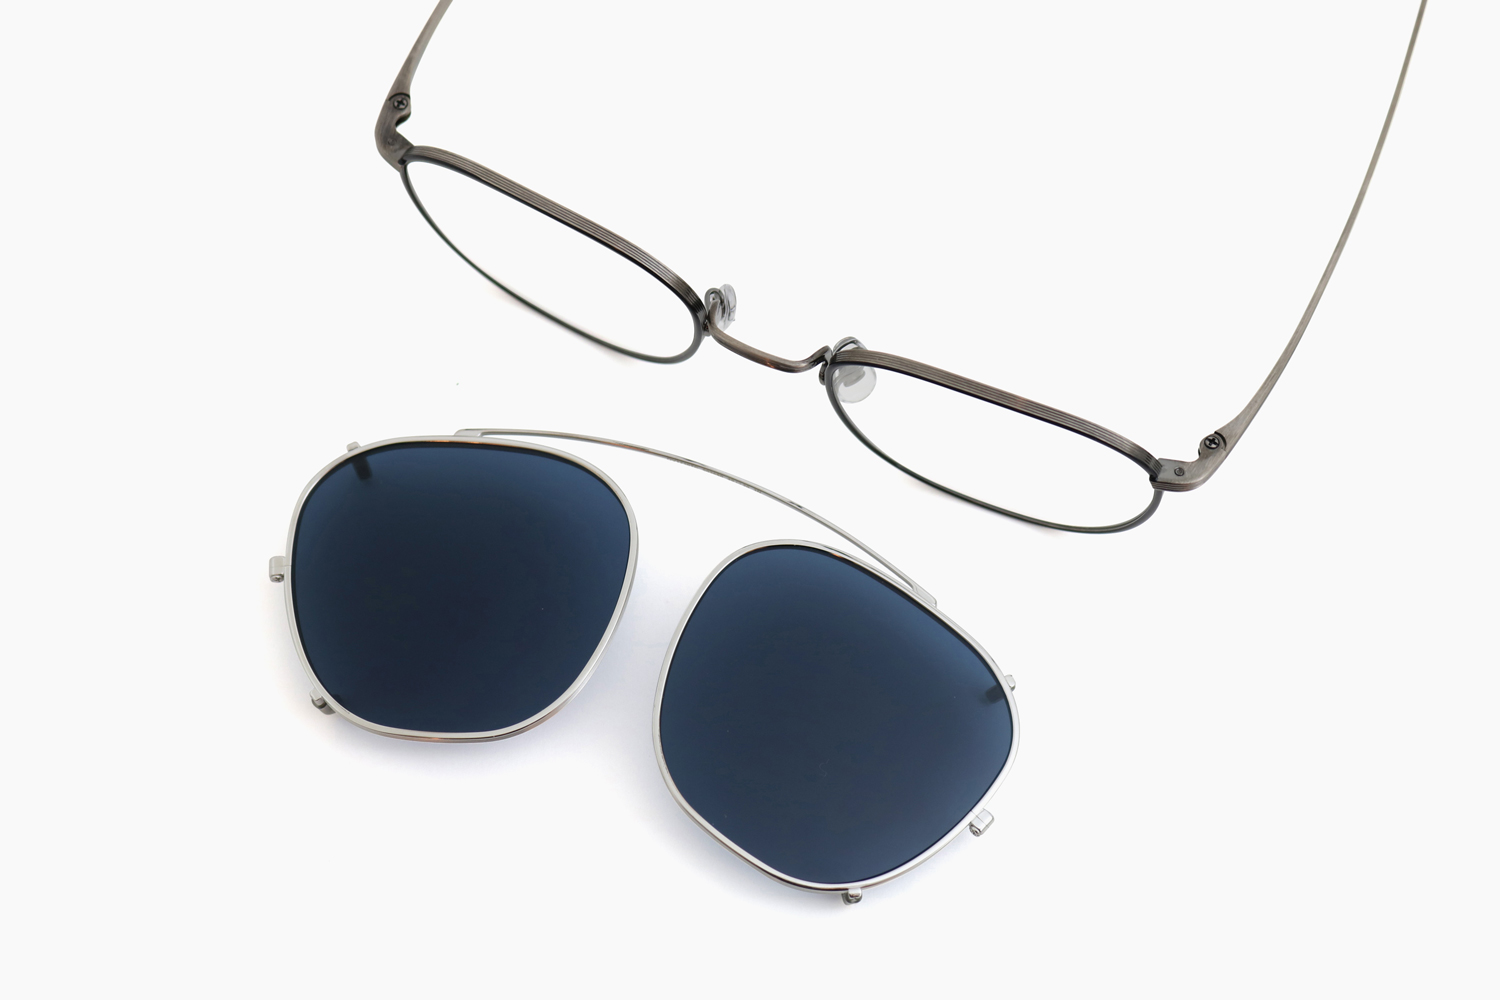 BOARDMEETING CLIP - 503680 Silver|OLIVER PEOPLES